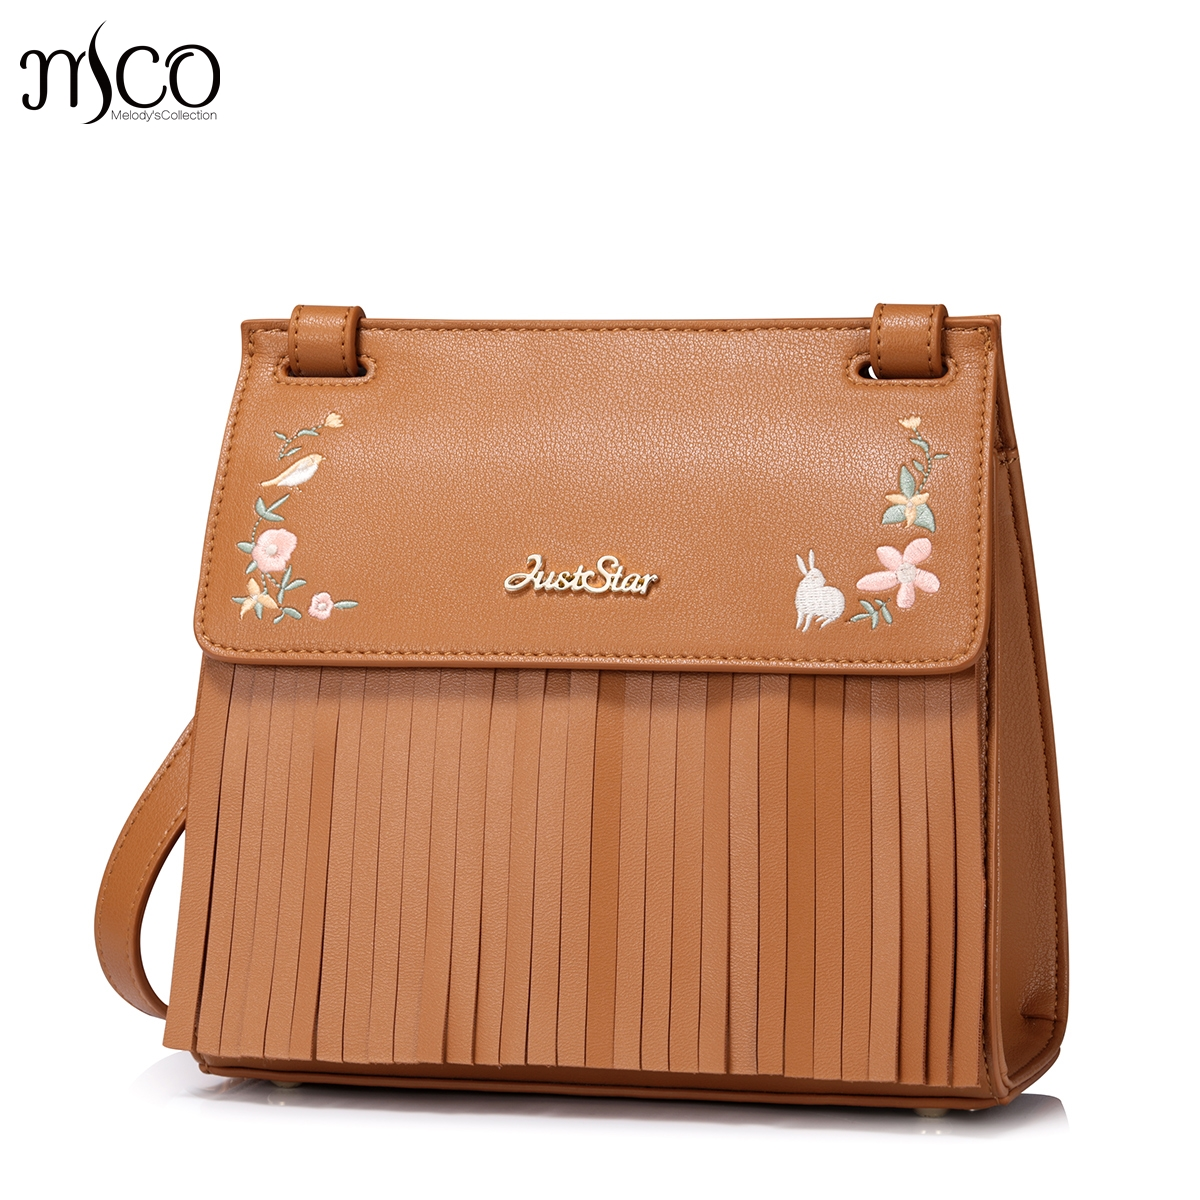 leather luxury tassels flower women bags designer Strap shoulder crossbody messenger bag Ladies Girls Sac a Main femme de marque 2018 floral luxury handbags women bag designer pu leather bag women messenger bags small chain crossbody shoulder bag sac a main